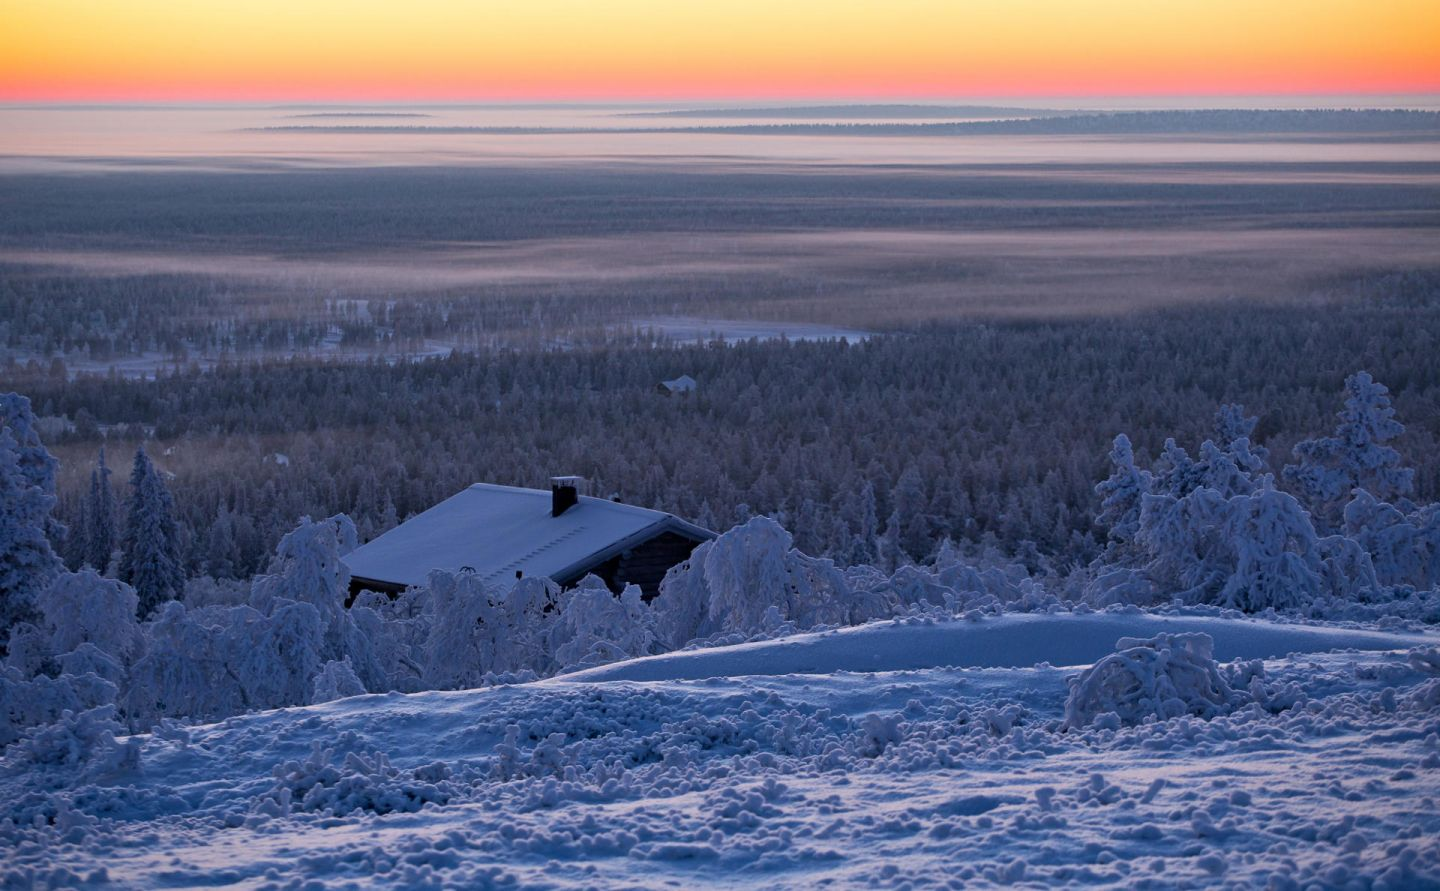 Lapland landscape in winter during a Polar Night